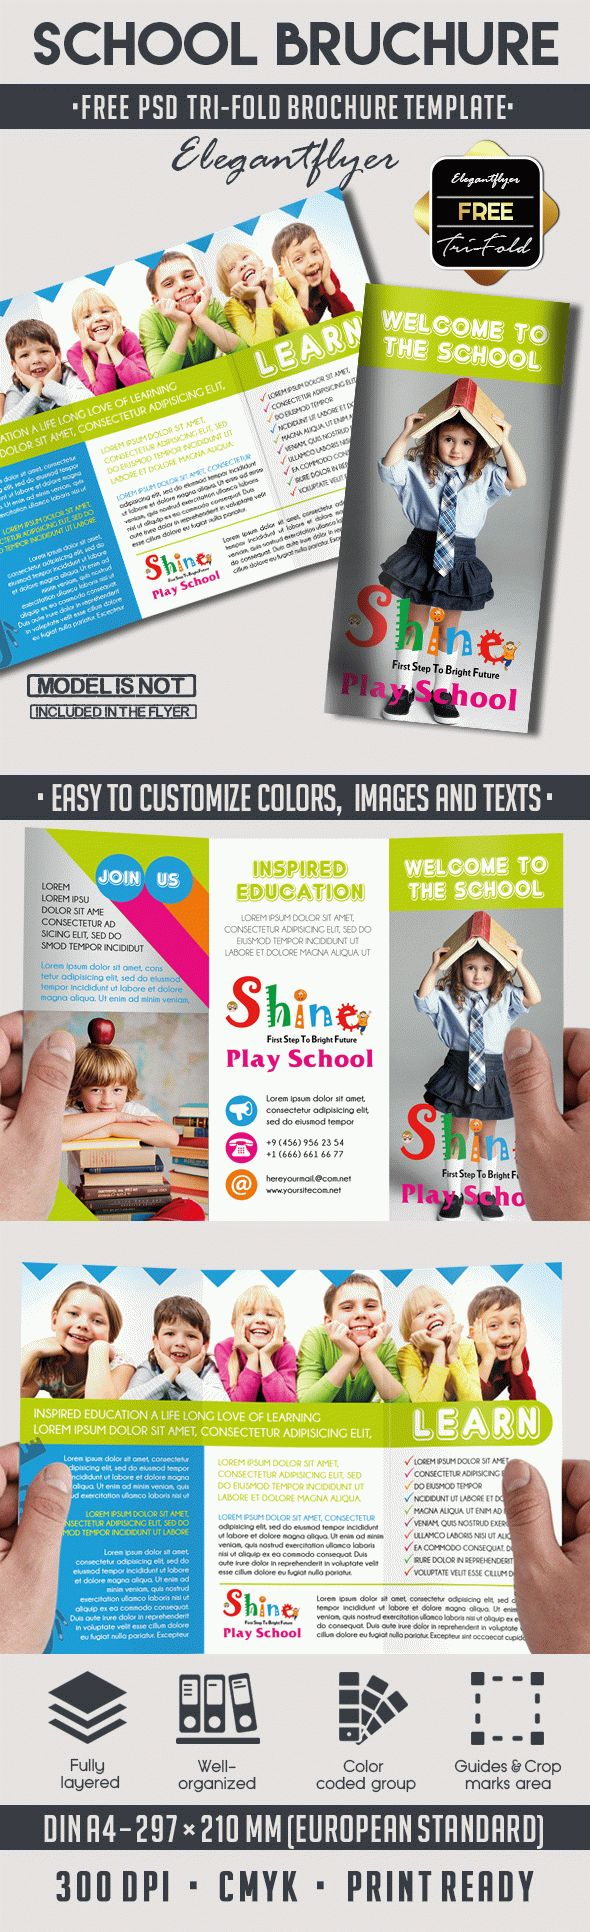 School free psd tri fold psd brochure template by for School brochure template free